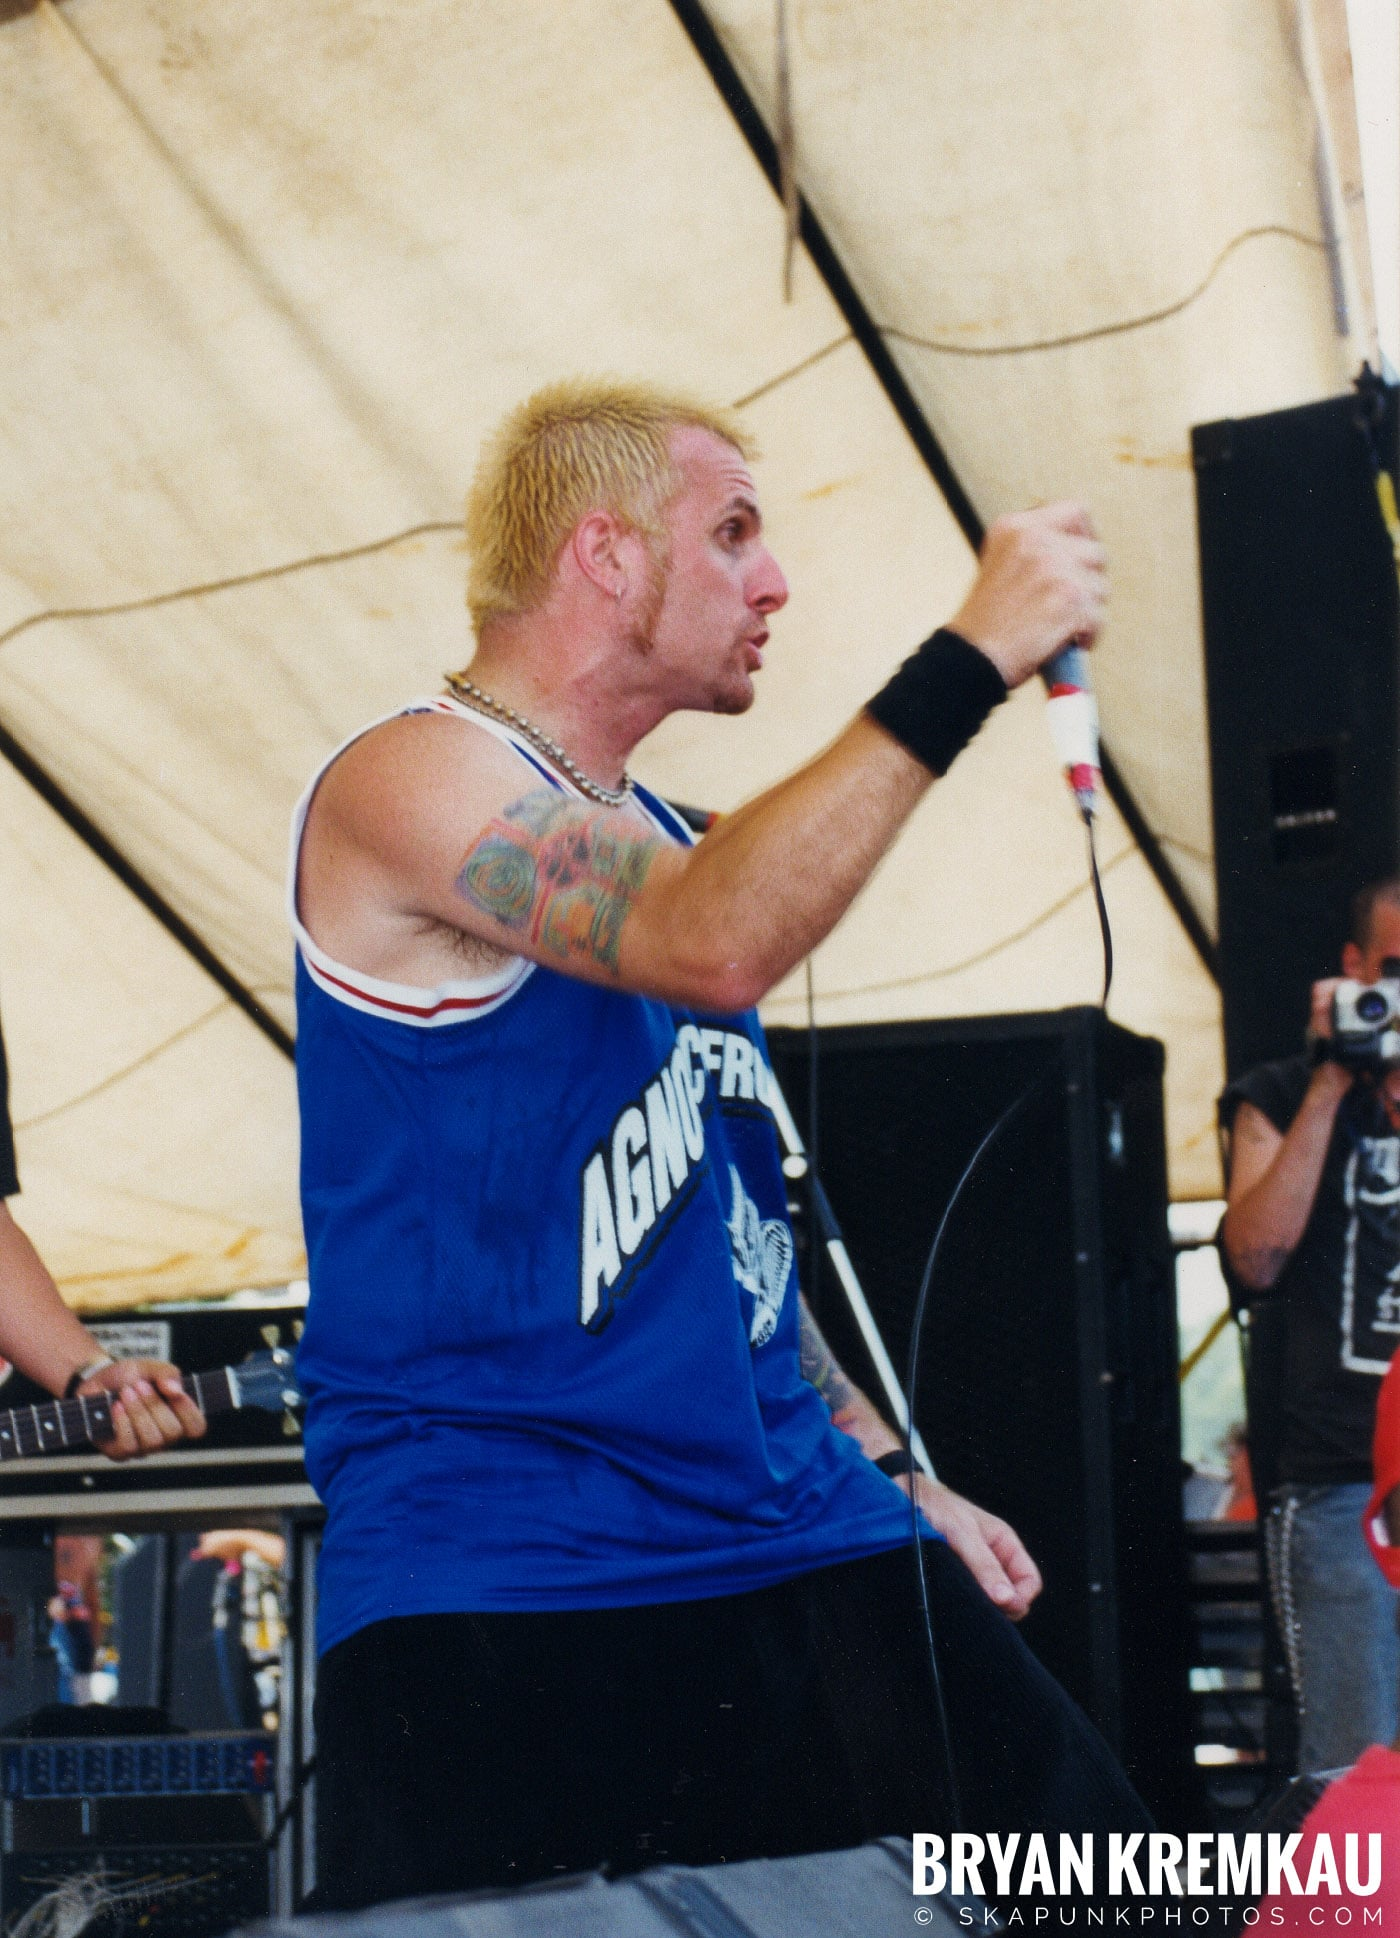 7 Seconds @ Vans Warped Tour, Randall's Island, NYC - 7.16.99 (5)